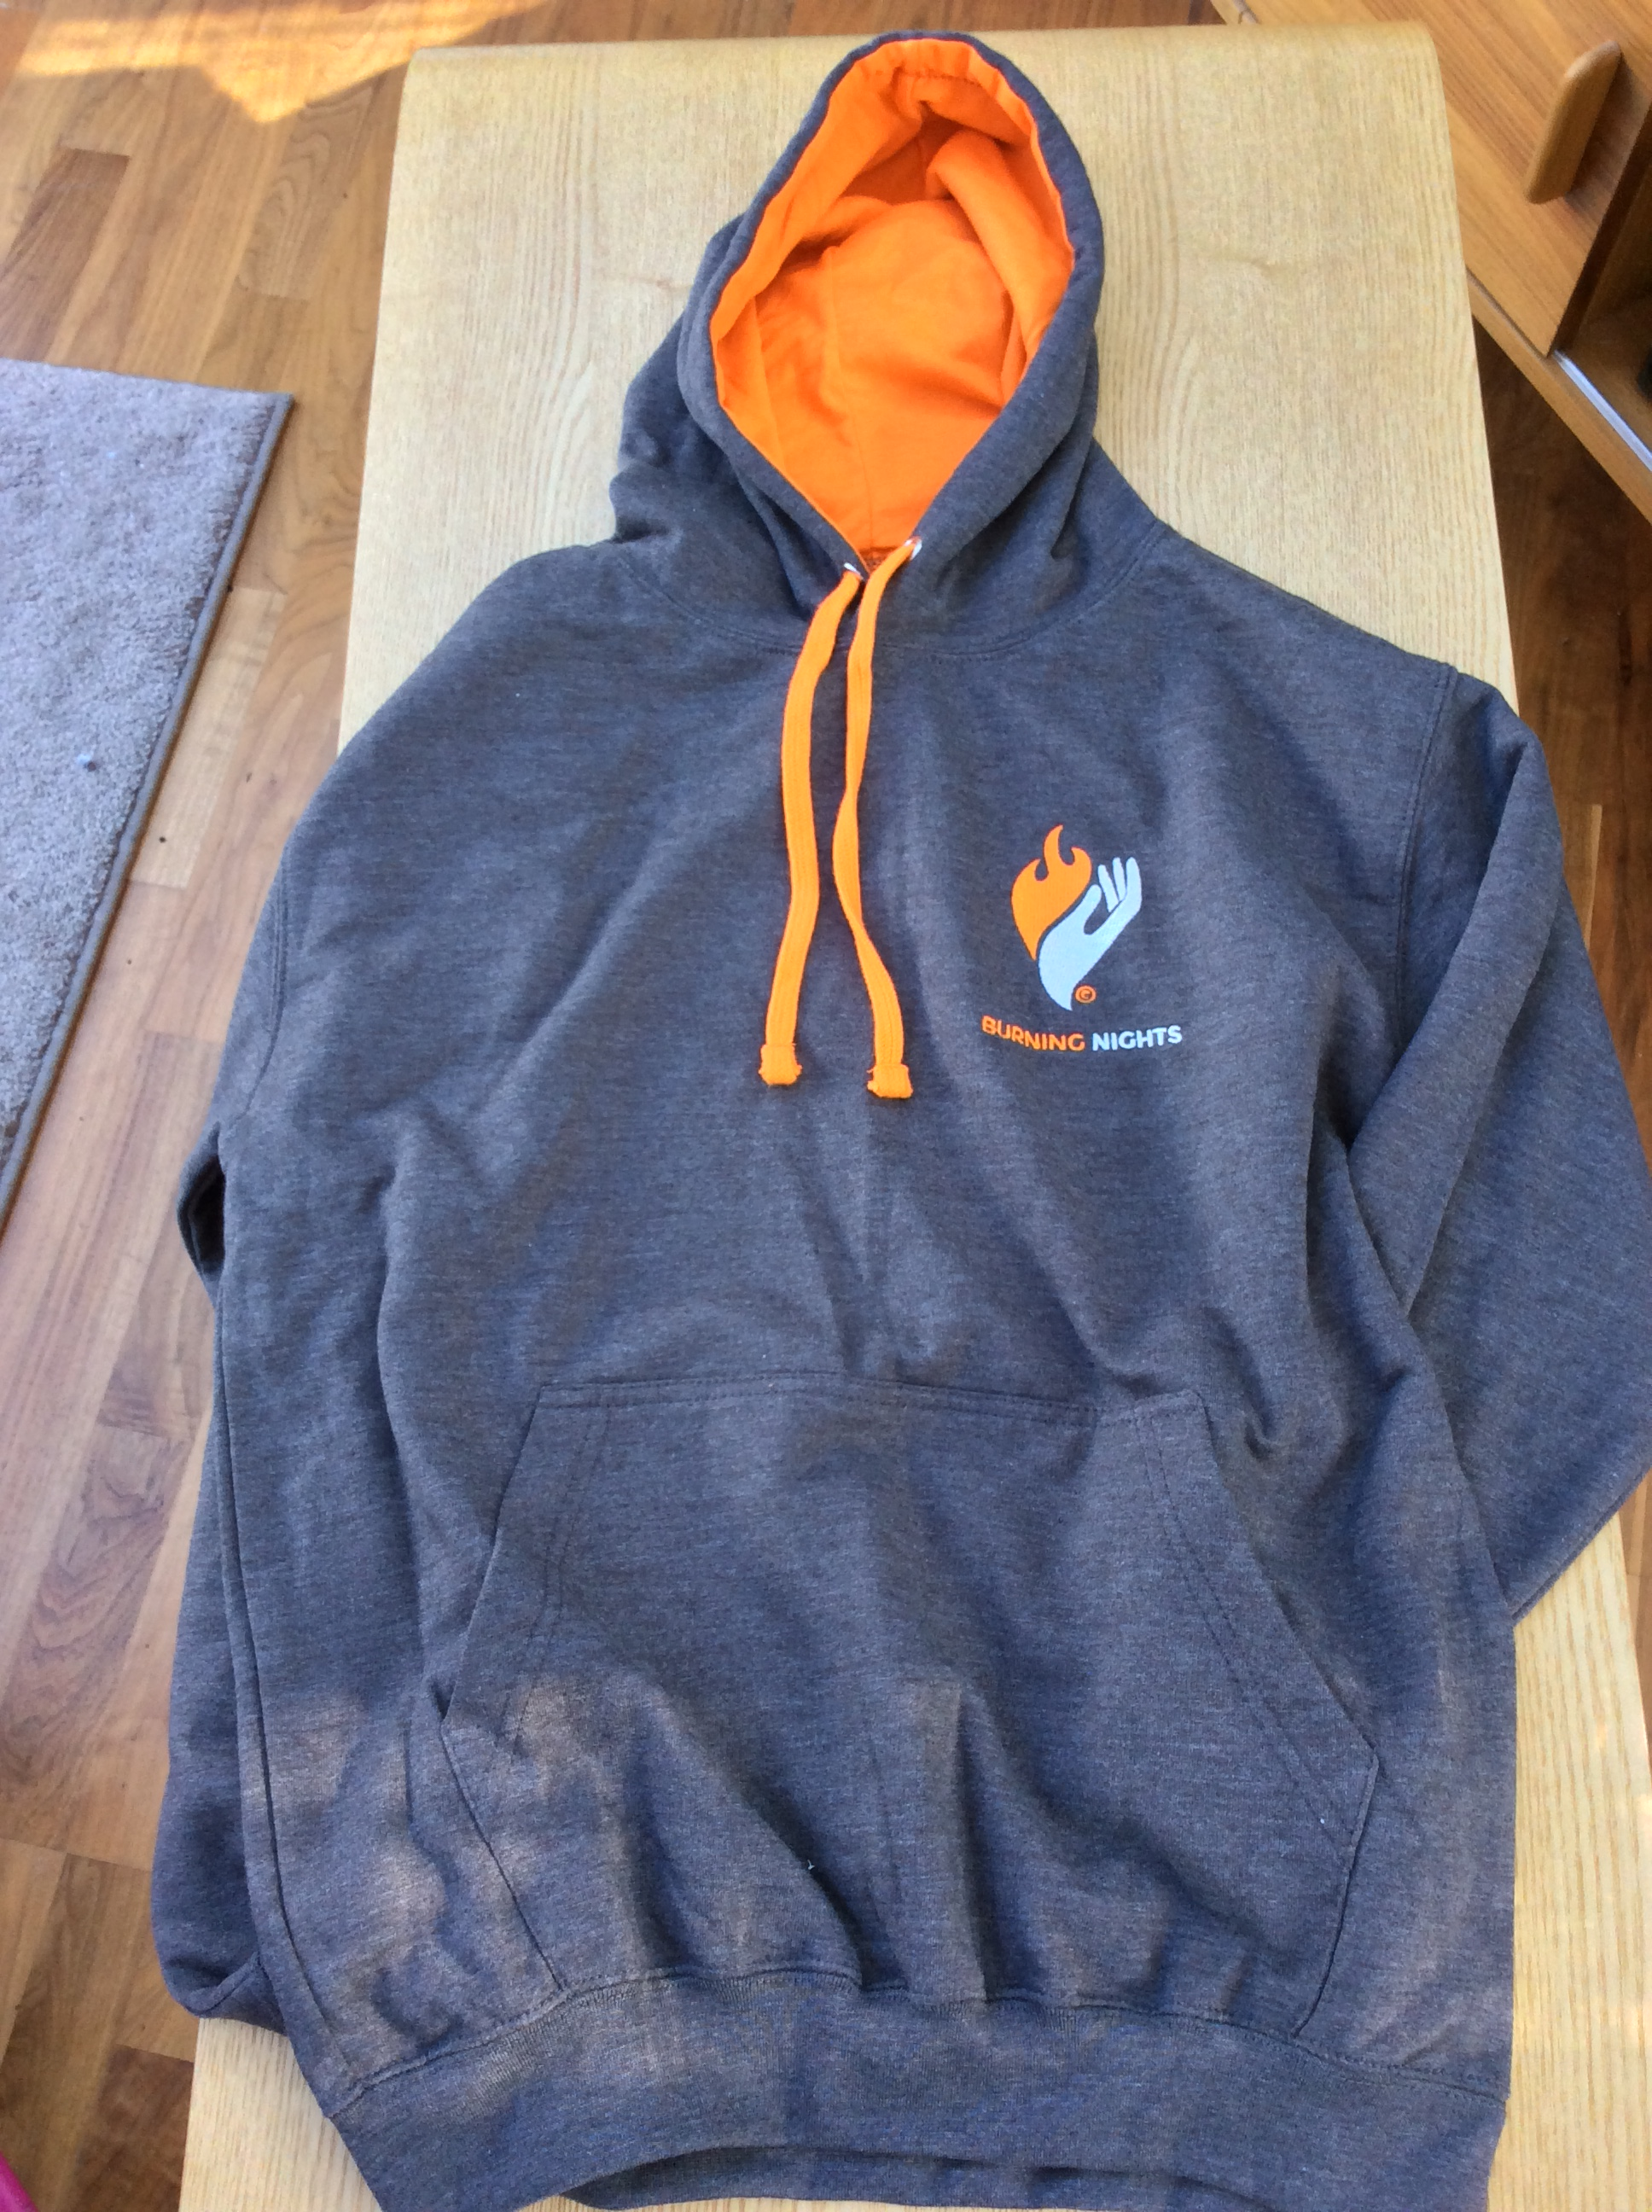 Exclusive Burning Nights CRPS Support Hoodie via Burning Nights CRPS Support charity